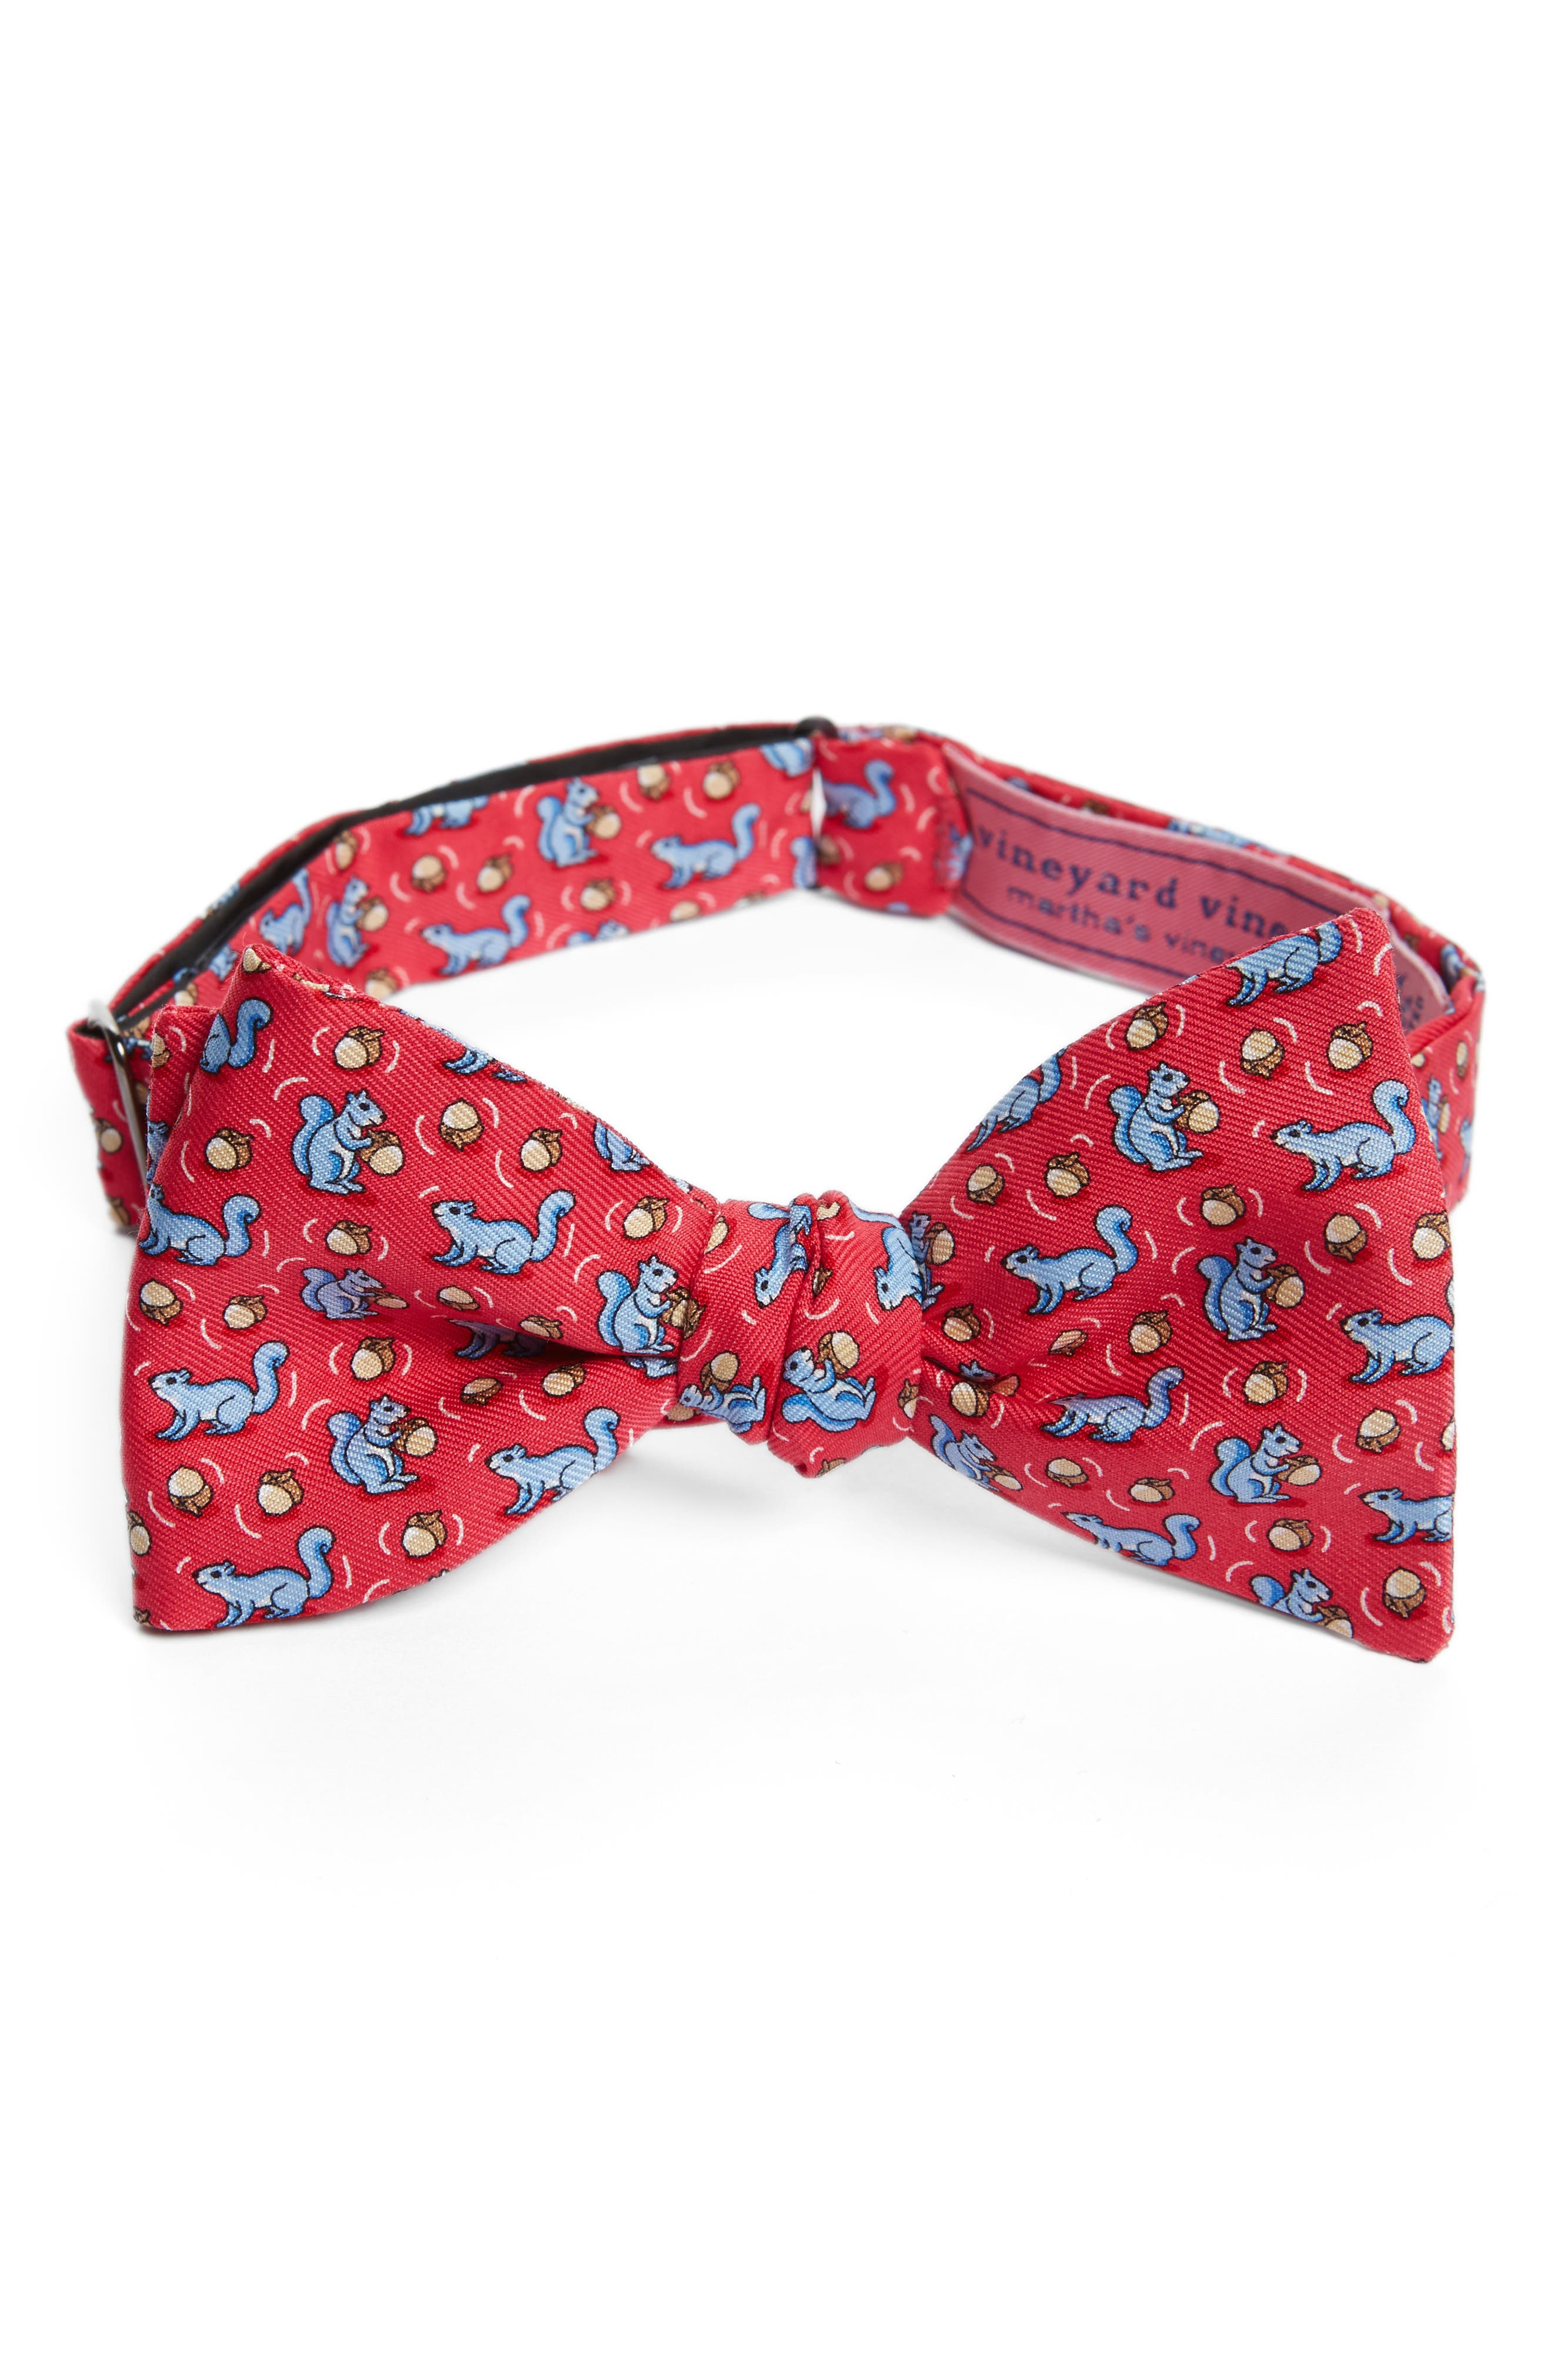 Squirrel Silk Bow Tie,                         Main,                         color, Raspberry